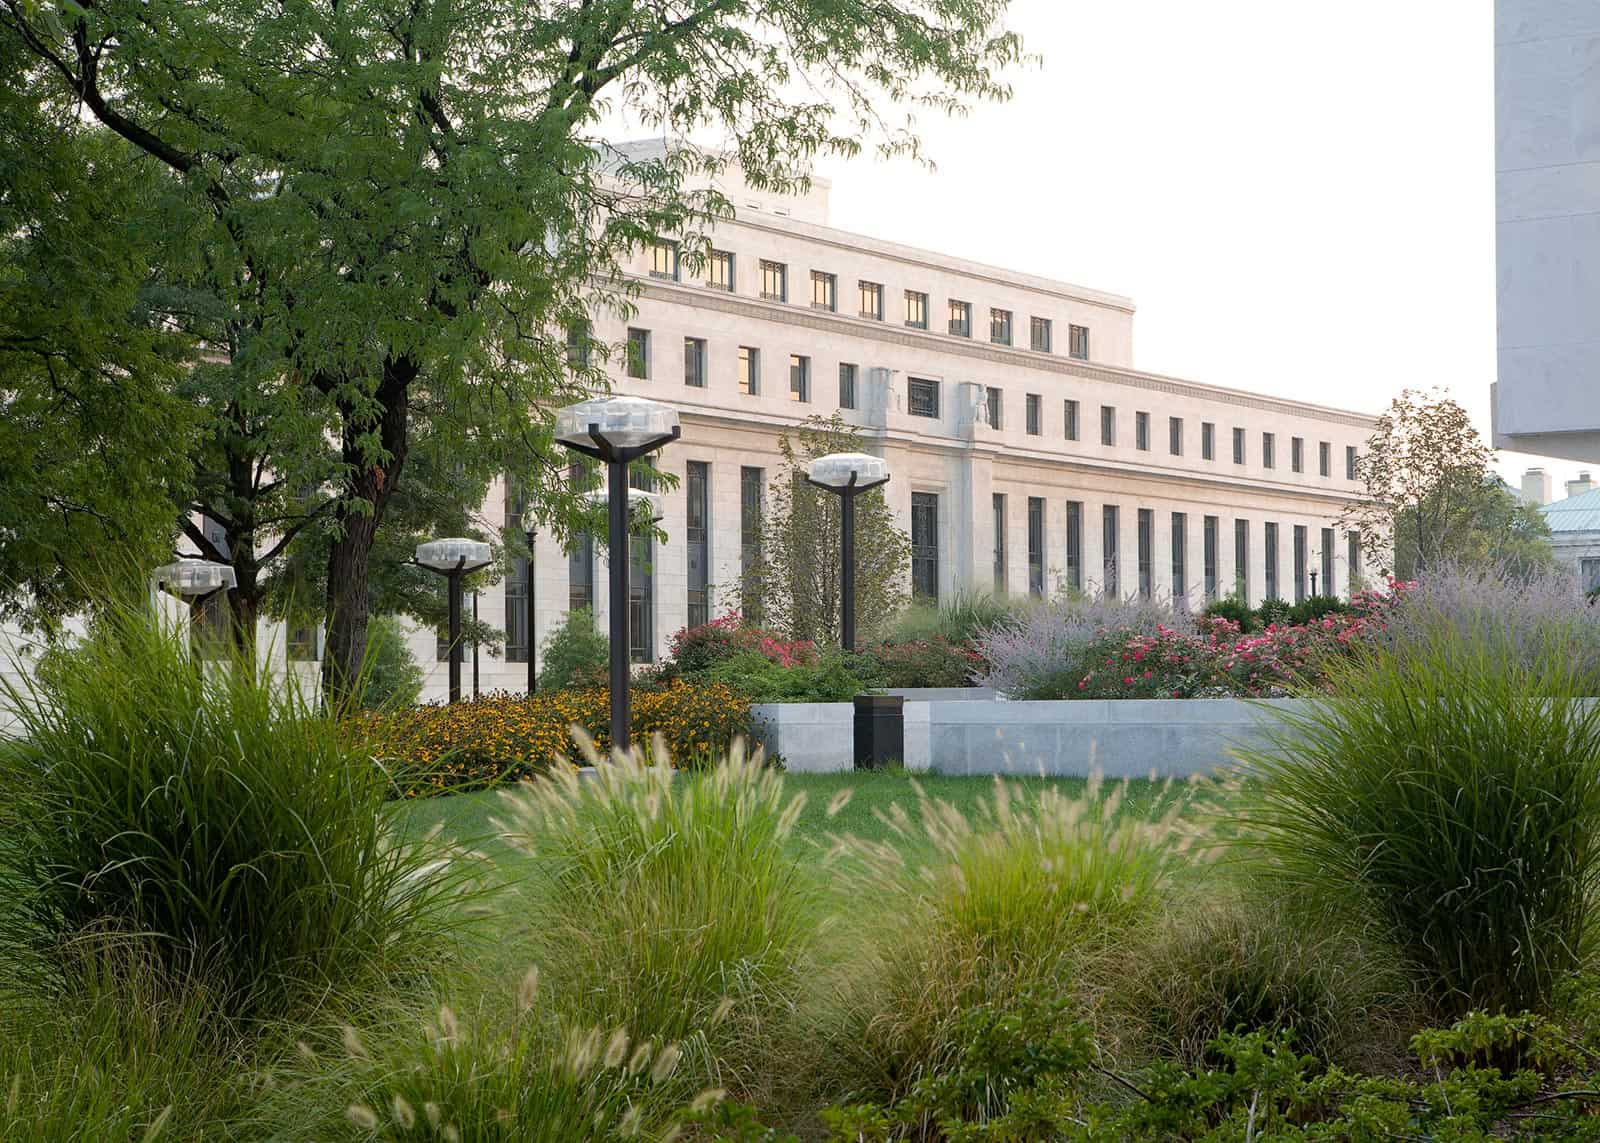 Federal Reserve building in Washington, DC. Photo: Roger Foley